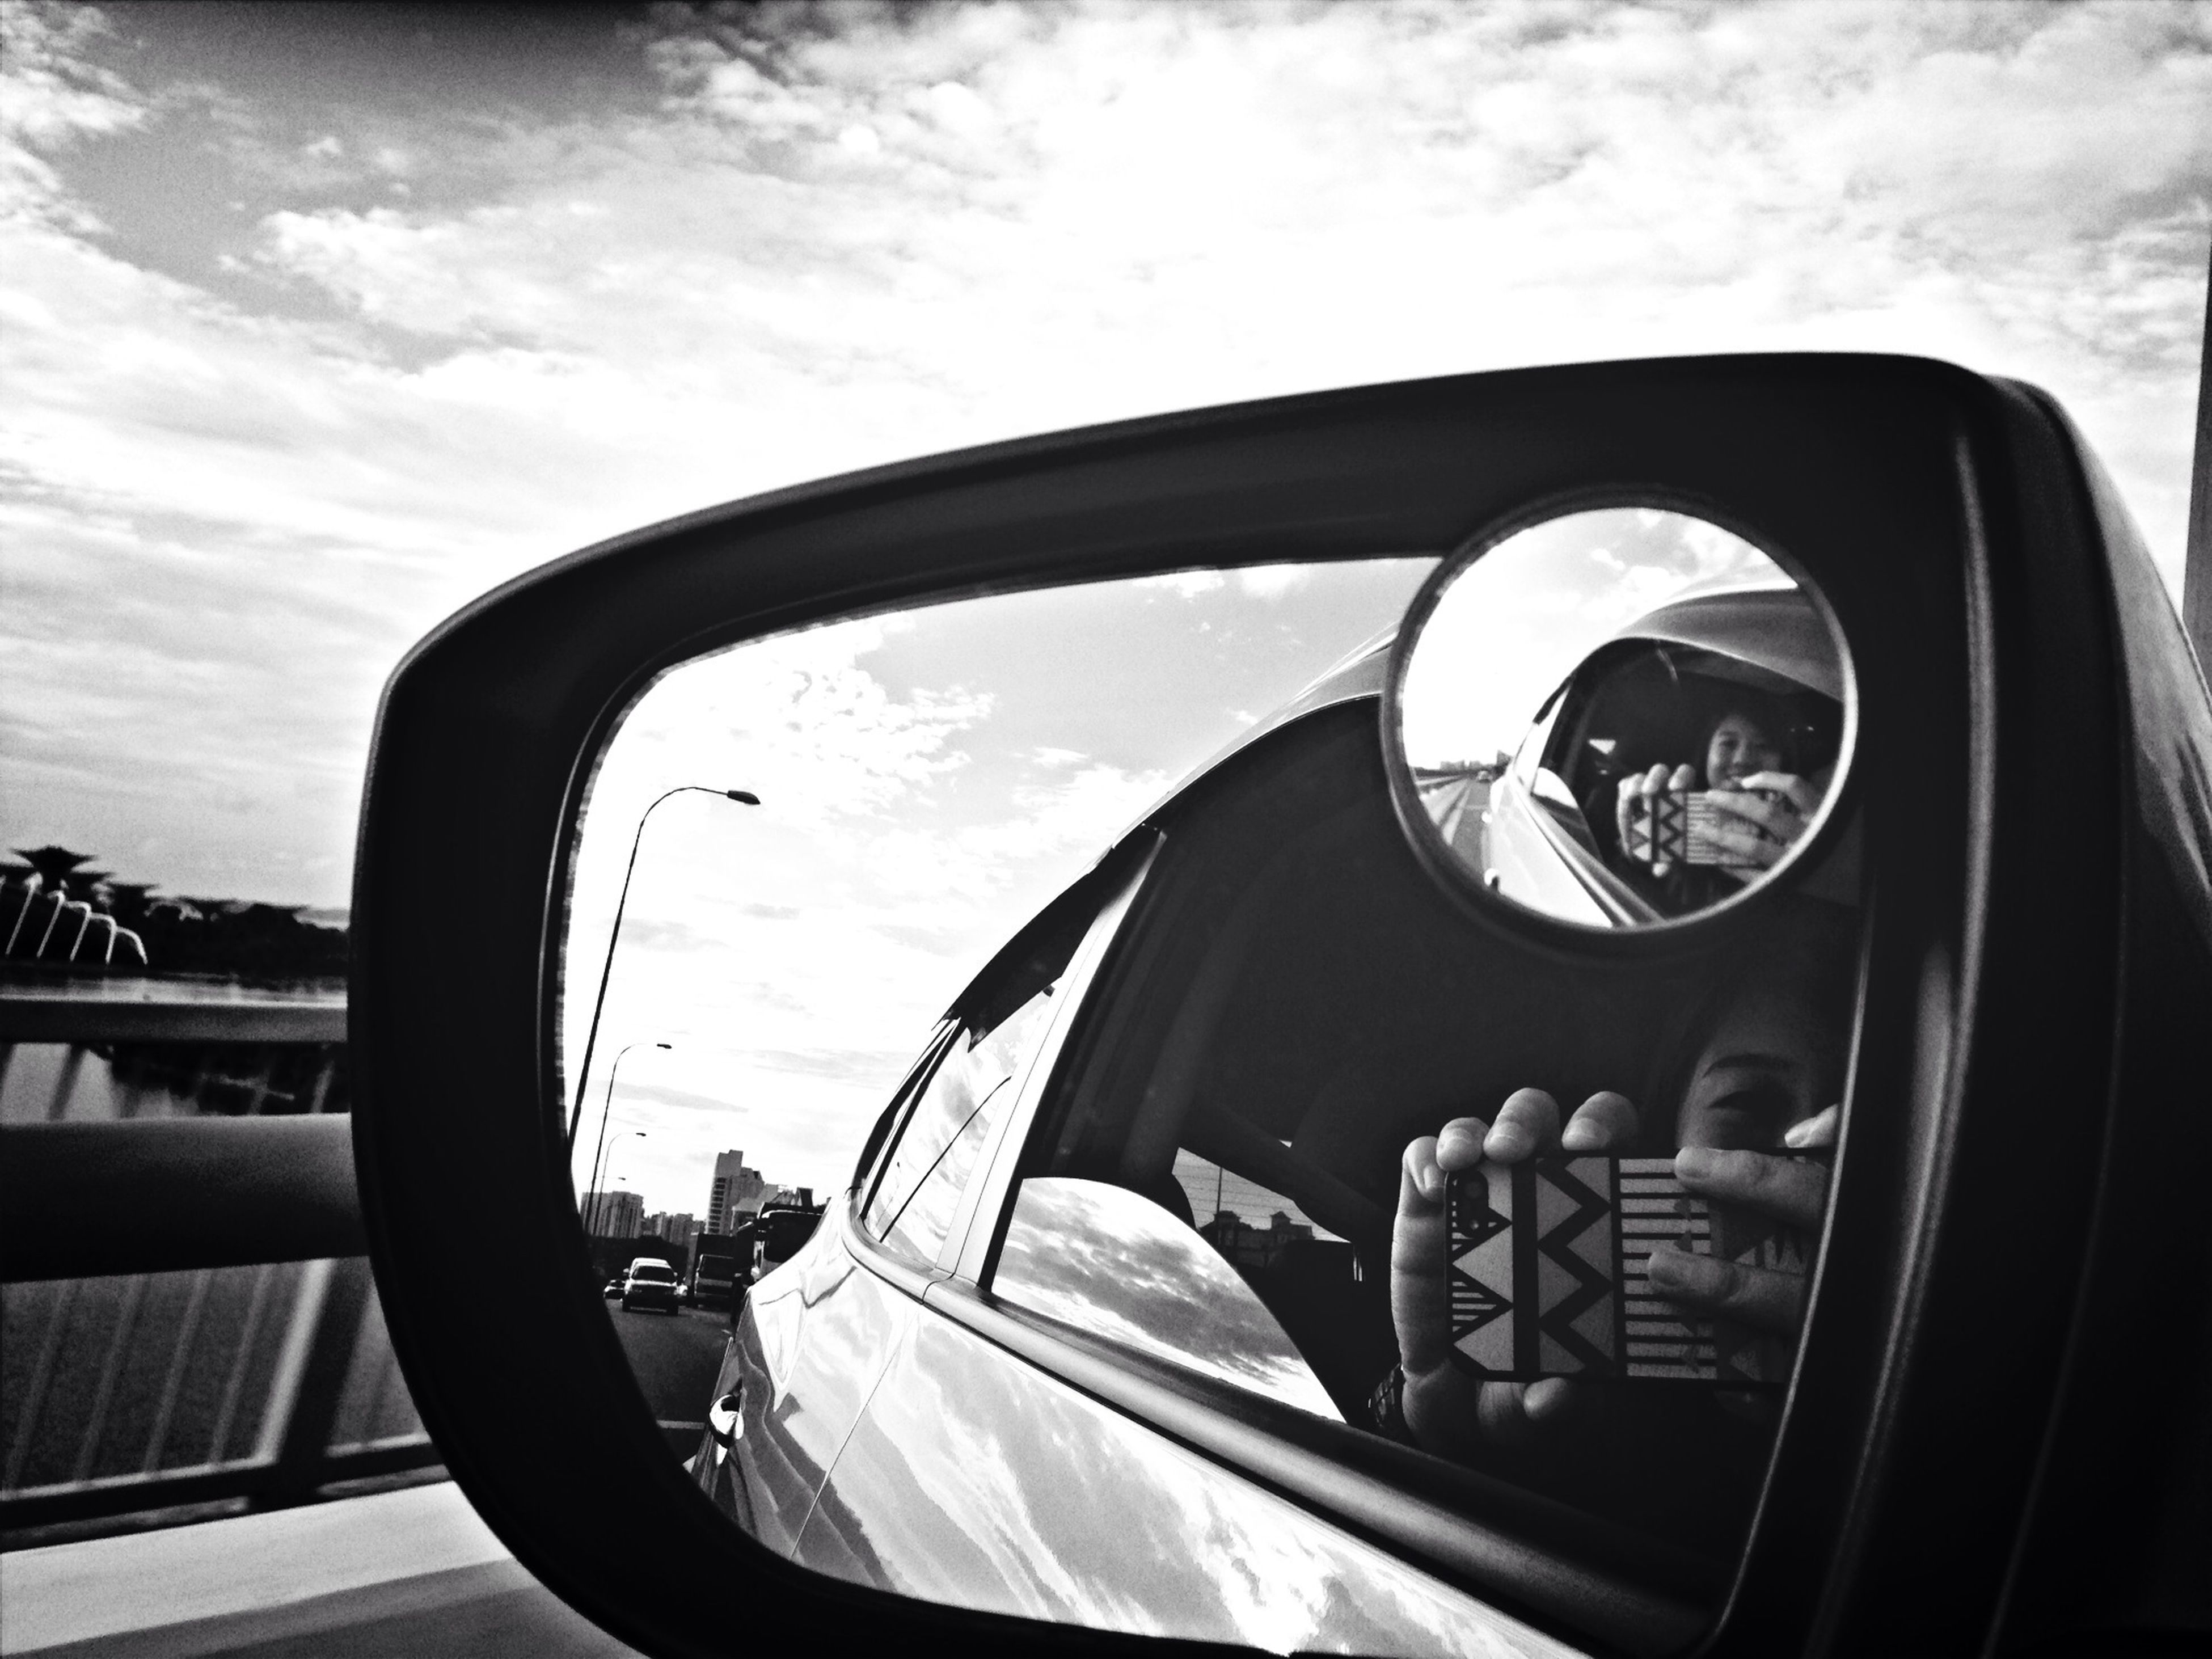 transportation, mode of transport, land vehicle, car, side-view mirror, sky, part of, car interior, reflection, road, vehicle interior, cropped, travel, vehicle part, glass - material, street, vehicle, cloud - sky, windshield, stationary